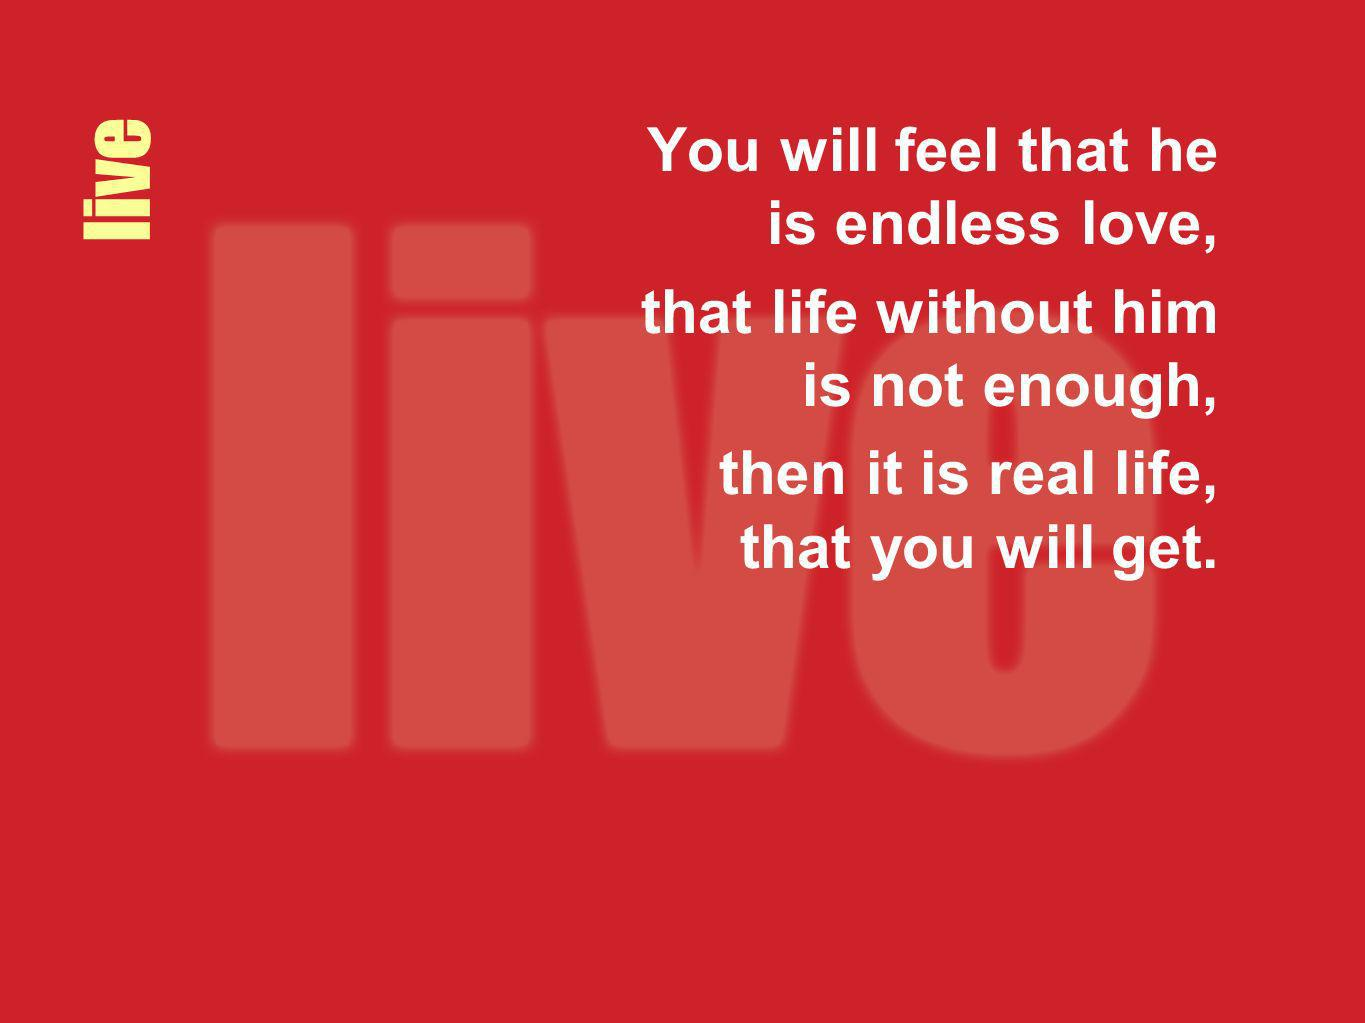 live You will feel that he is endless love,